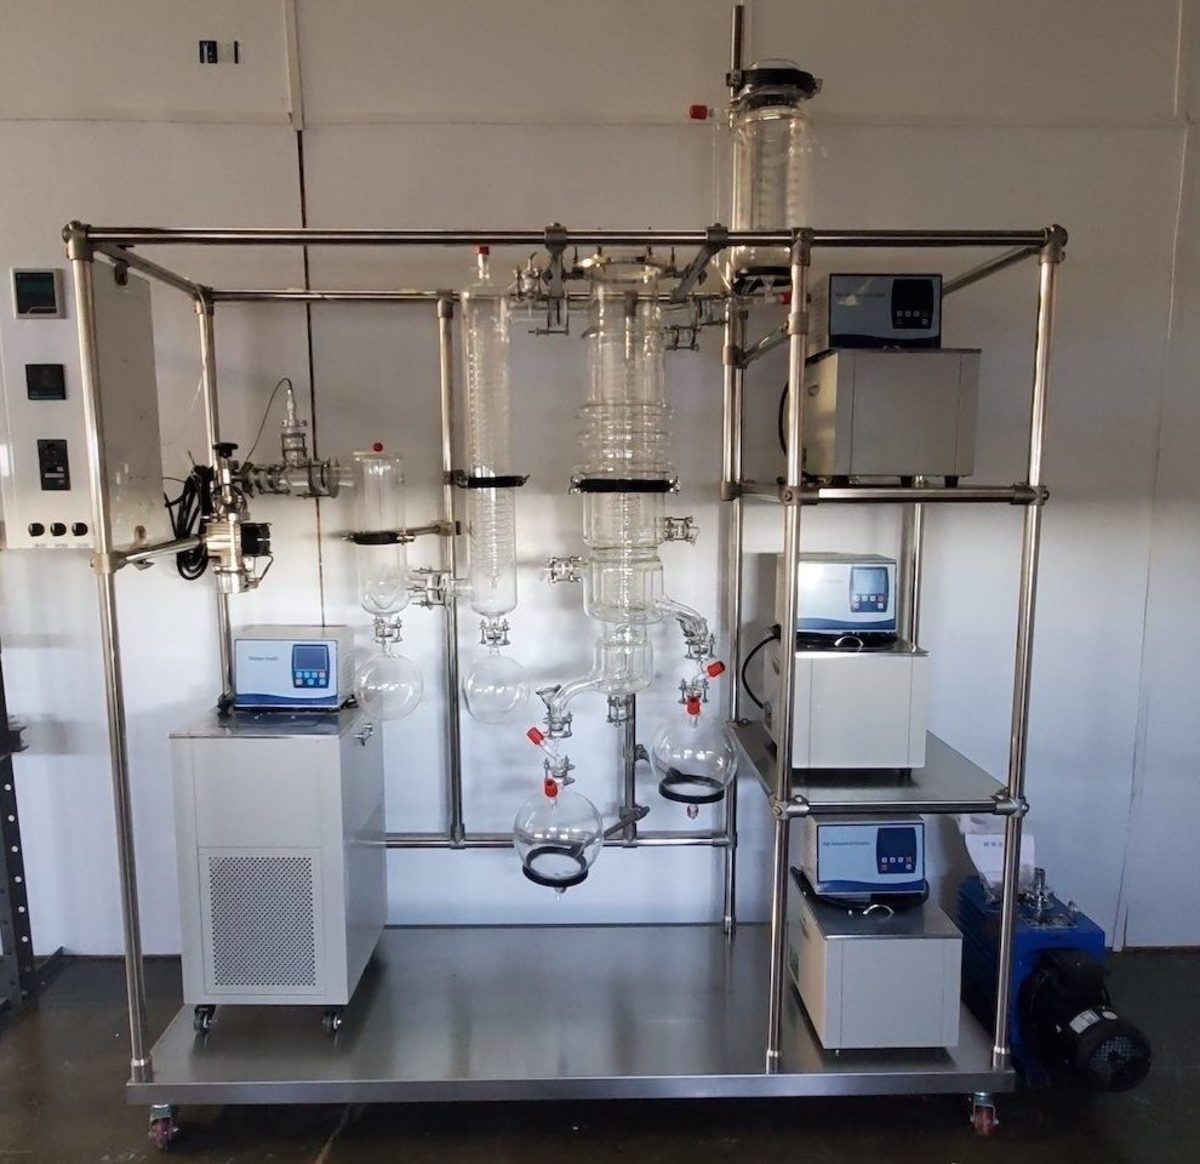 Testing and processing of marijuana products for retail sales by tribal entities involves the use of sophisticated equipment. (Photo courtesy Tribal Cannabis Consultants via South Dakota News Watch)